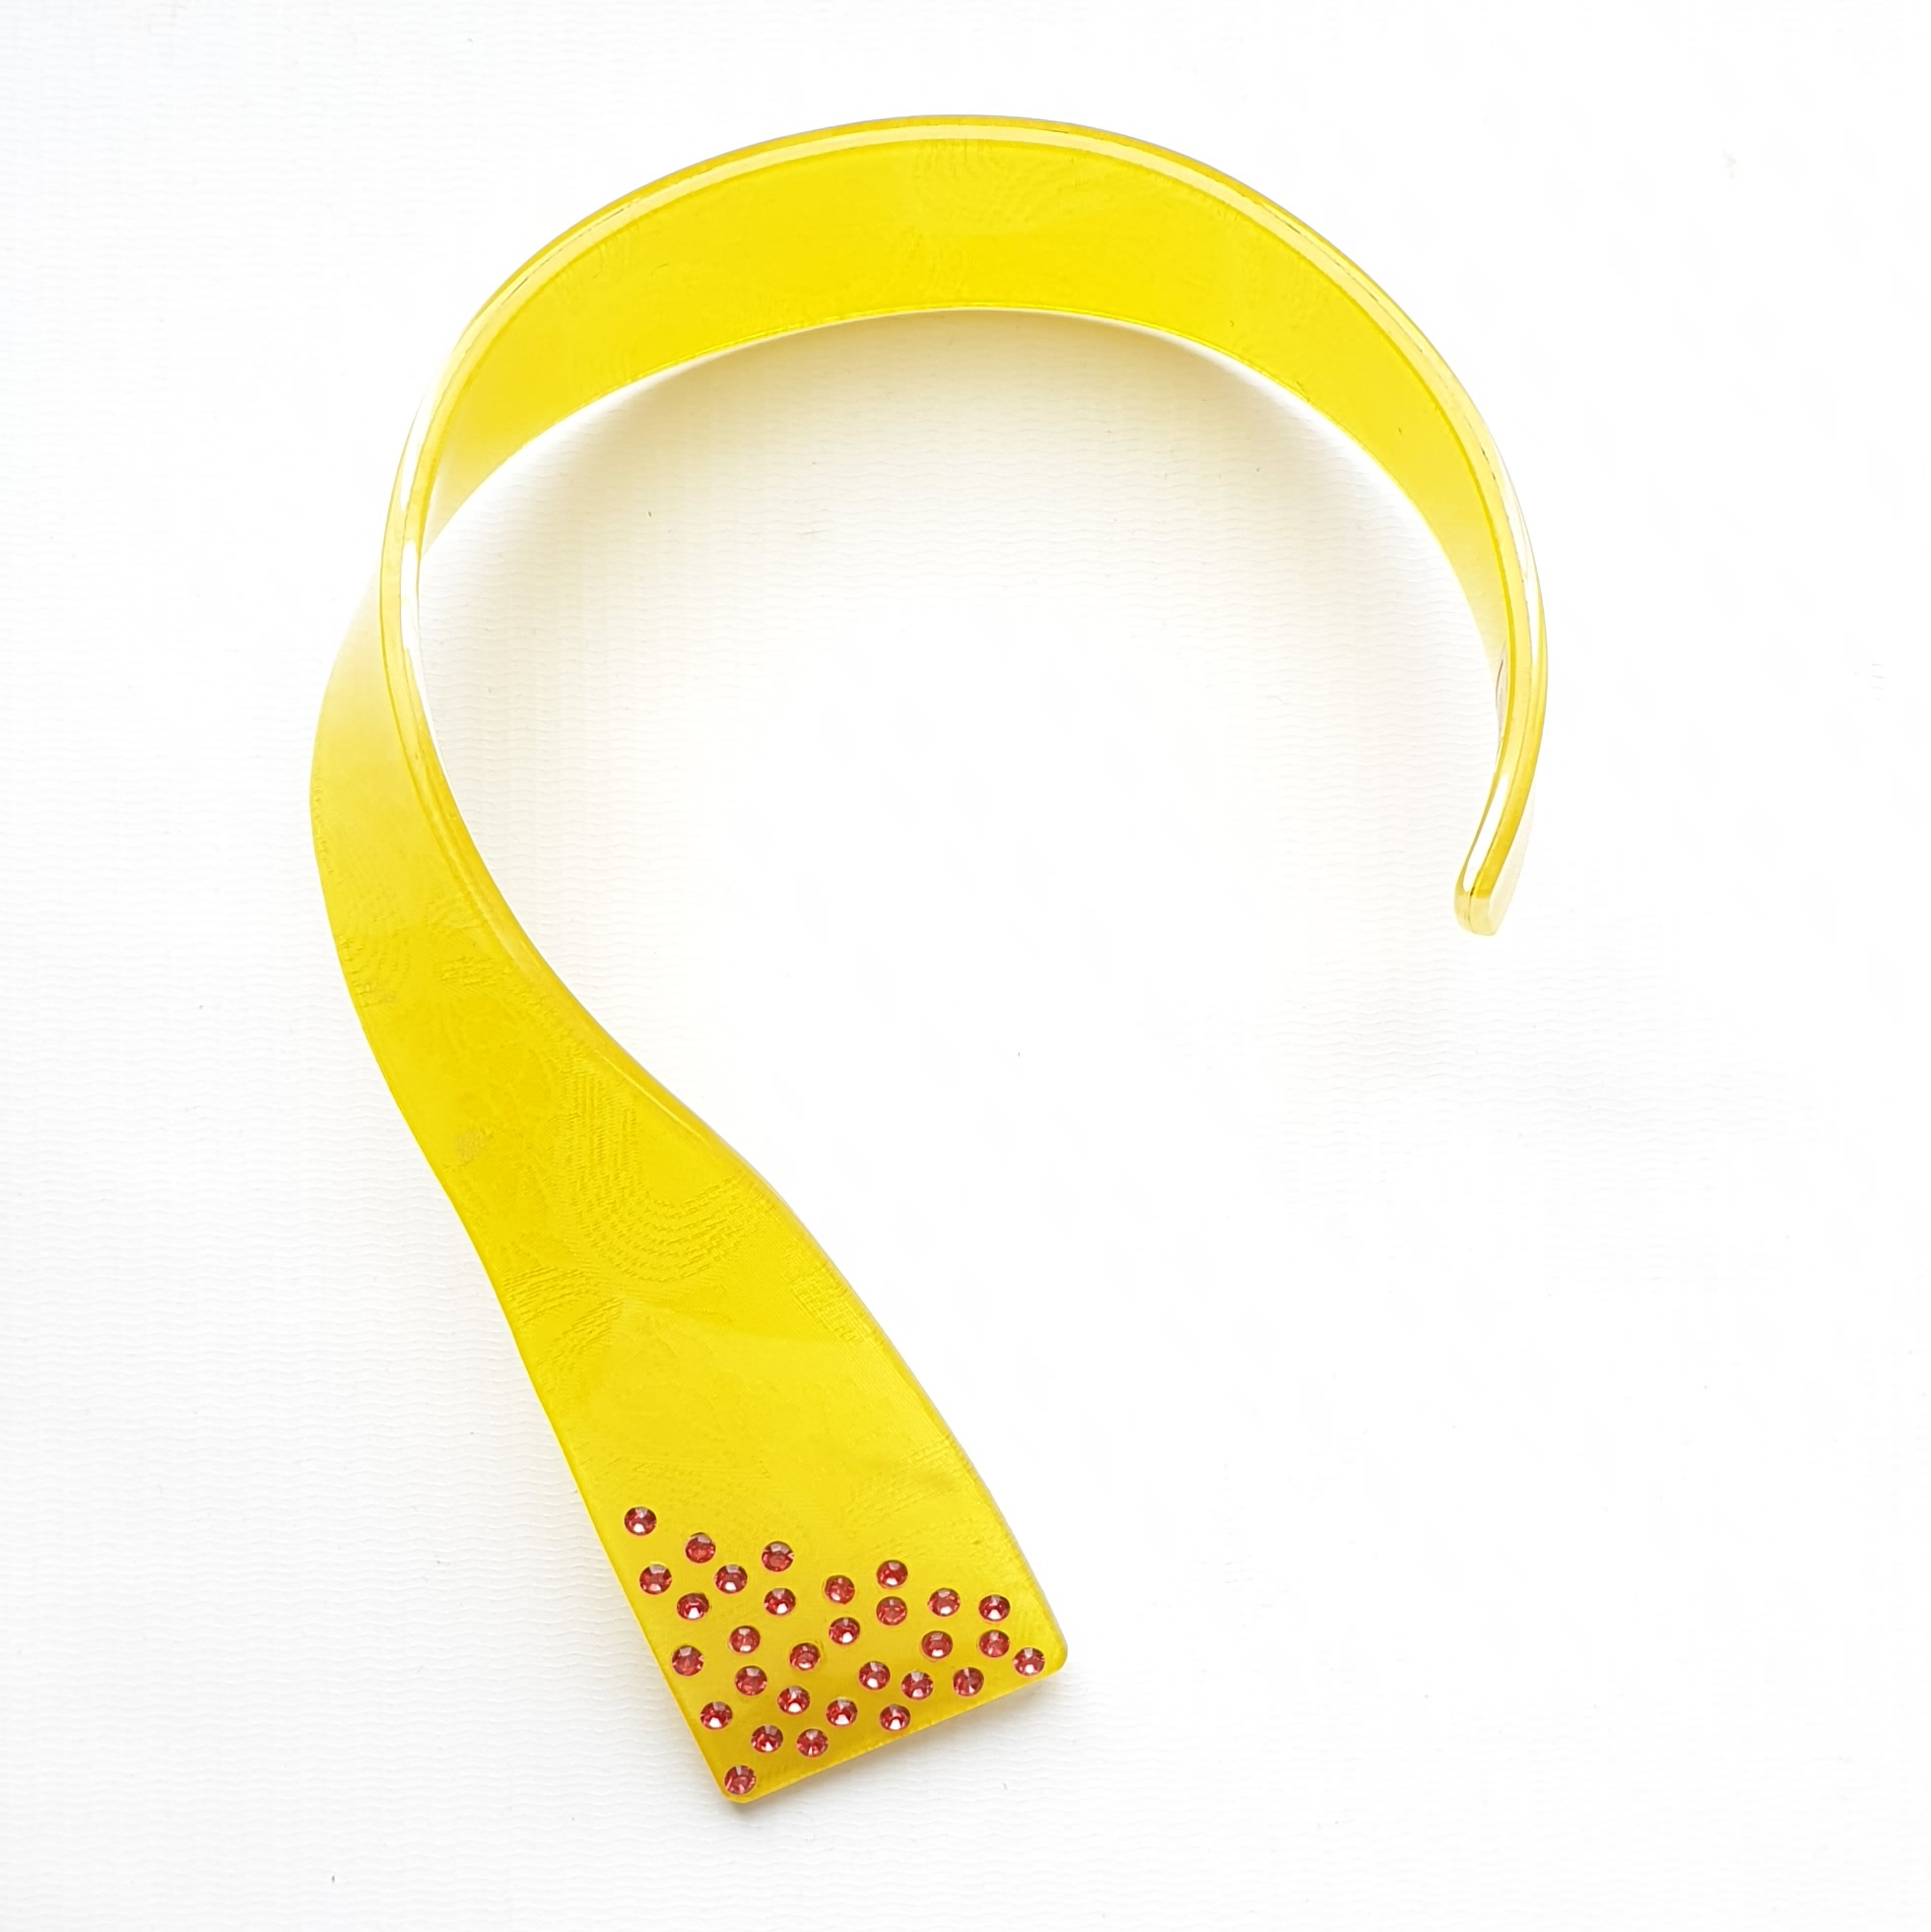 neckpiece resin/rhinestone yellow